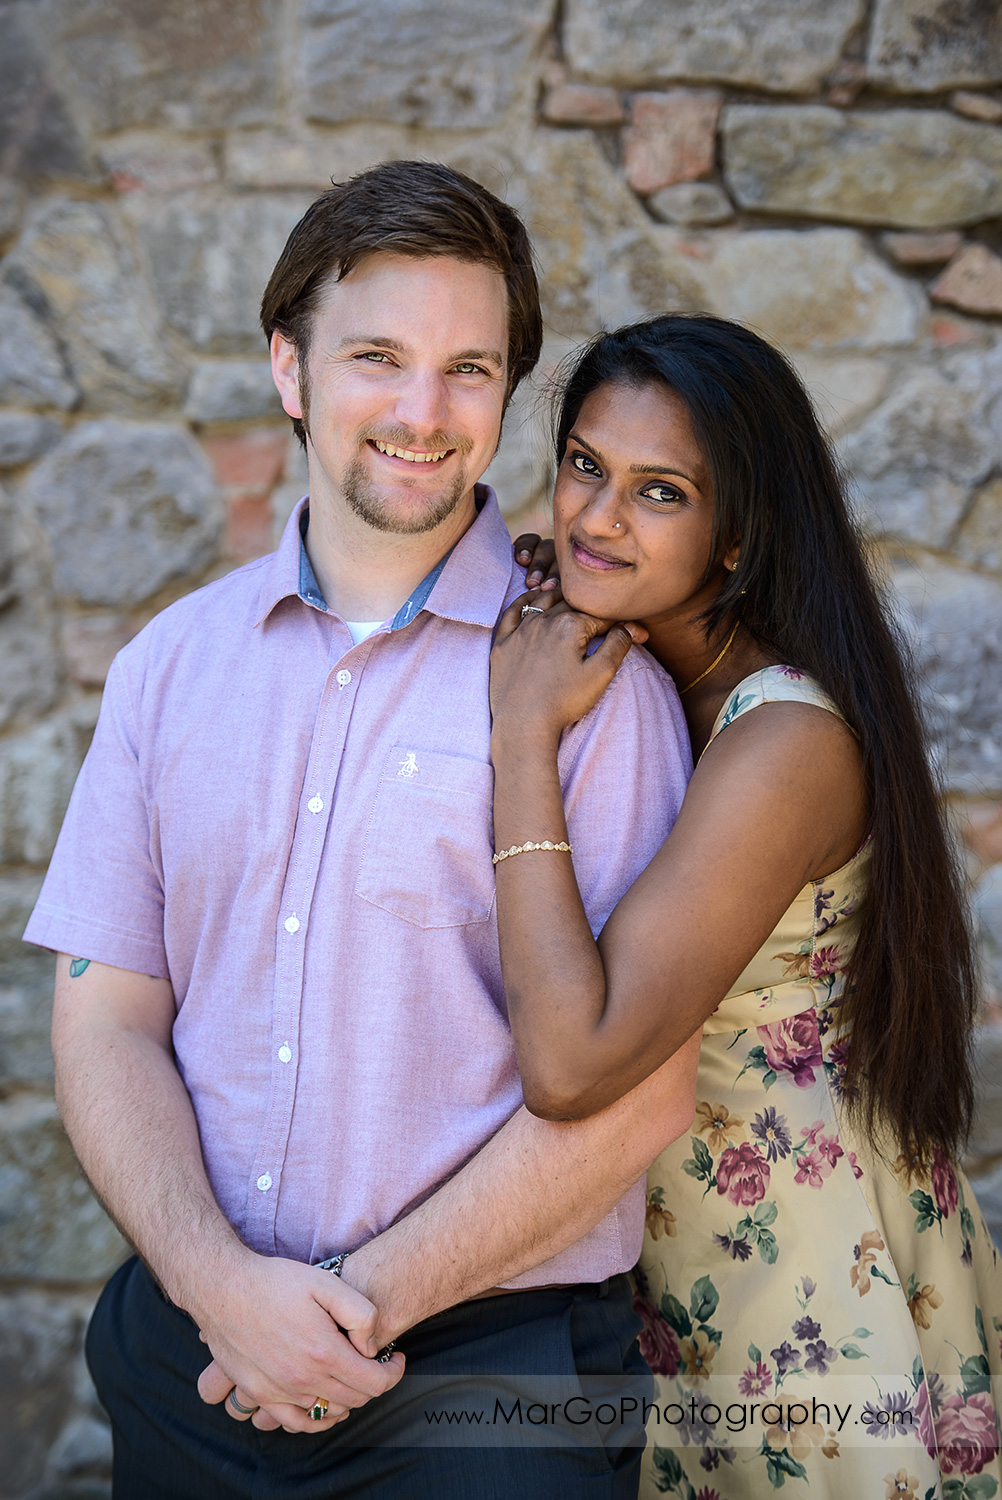 portrait of Indian woman in flower dress and man in pink shirt lokking into camera on brick background during engagement session at Castello di Amorosa in Calistoga